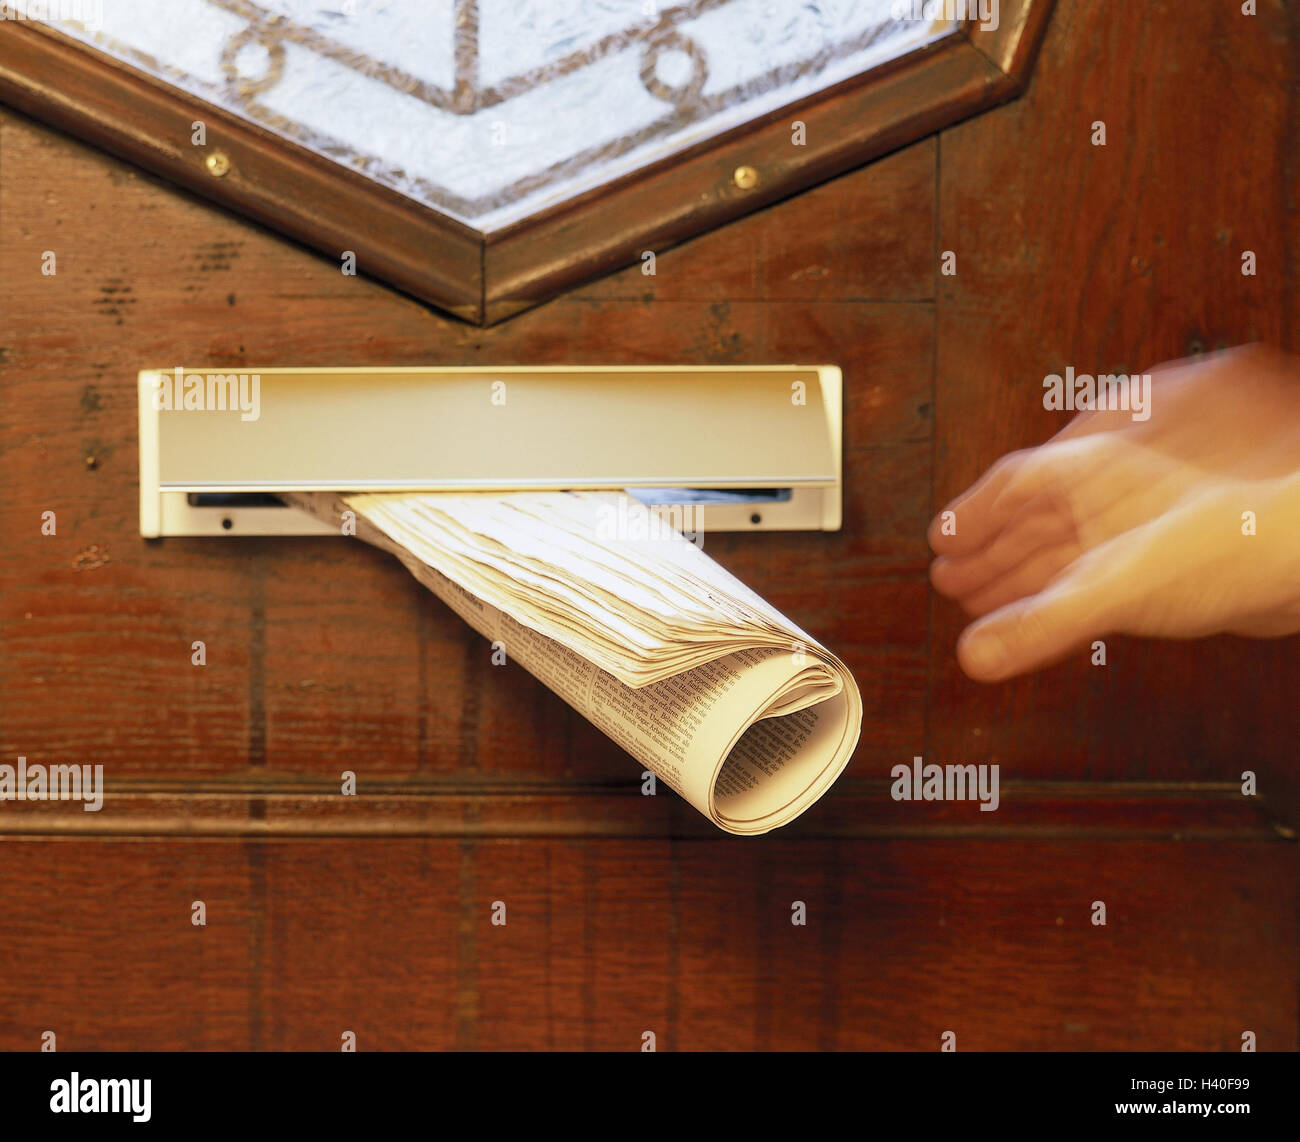 Front door letter slot newspaper person detail hand take blur door front door newspaper newspaper role messages information daily & Front door letter slot newspaper person detail hand take blur ...